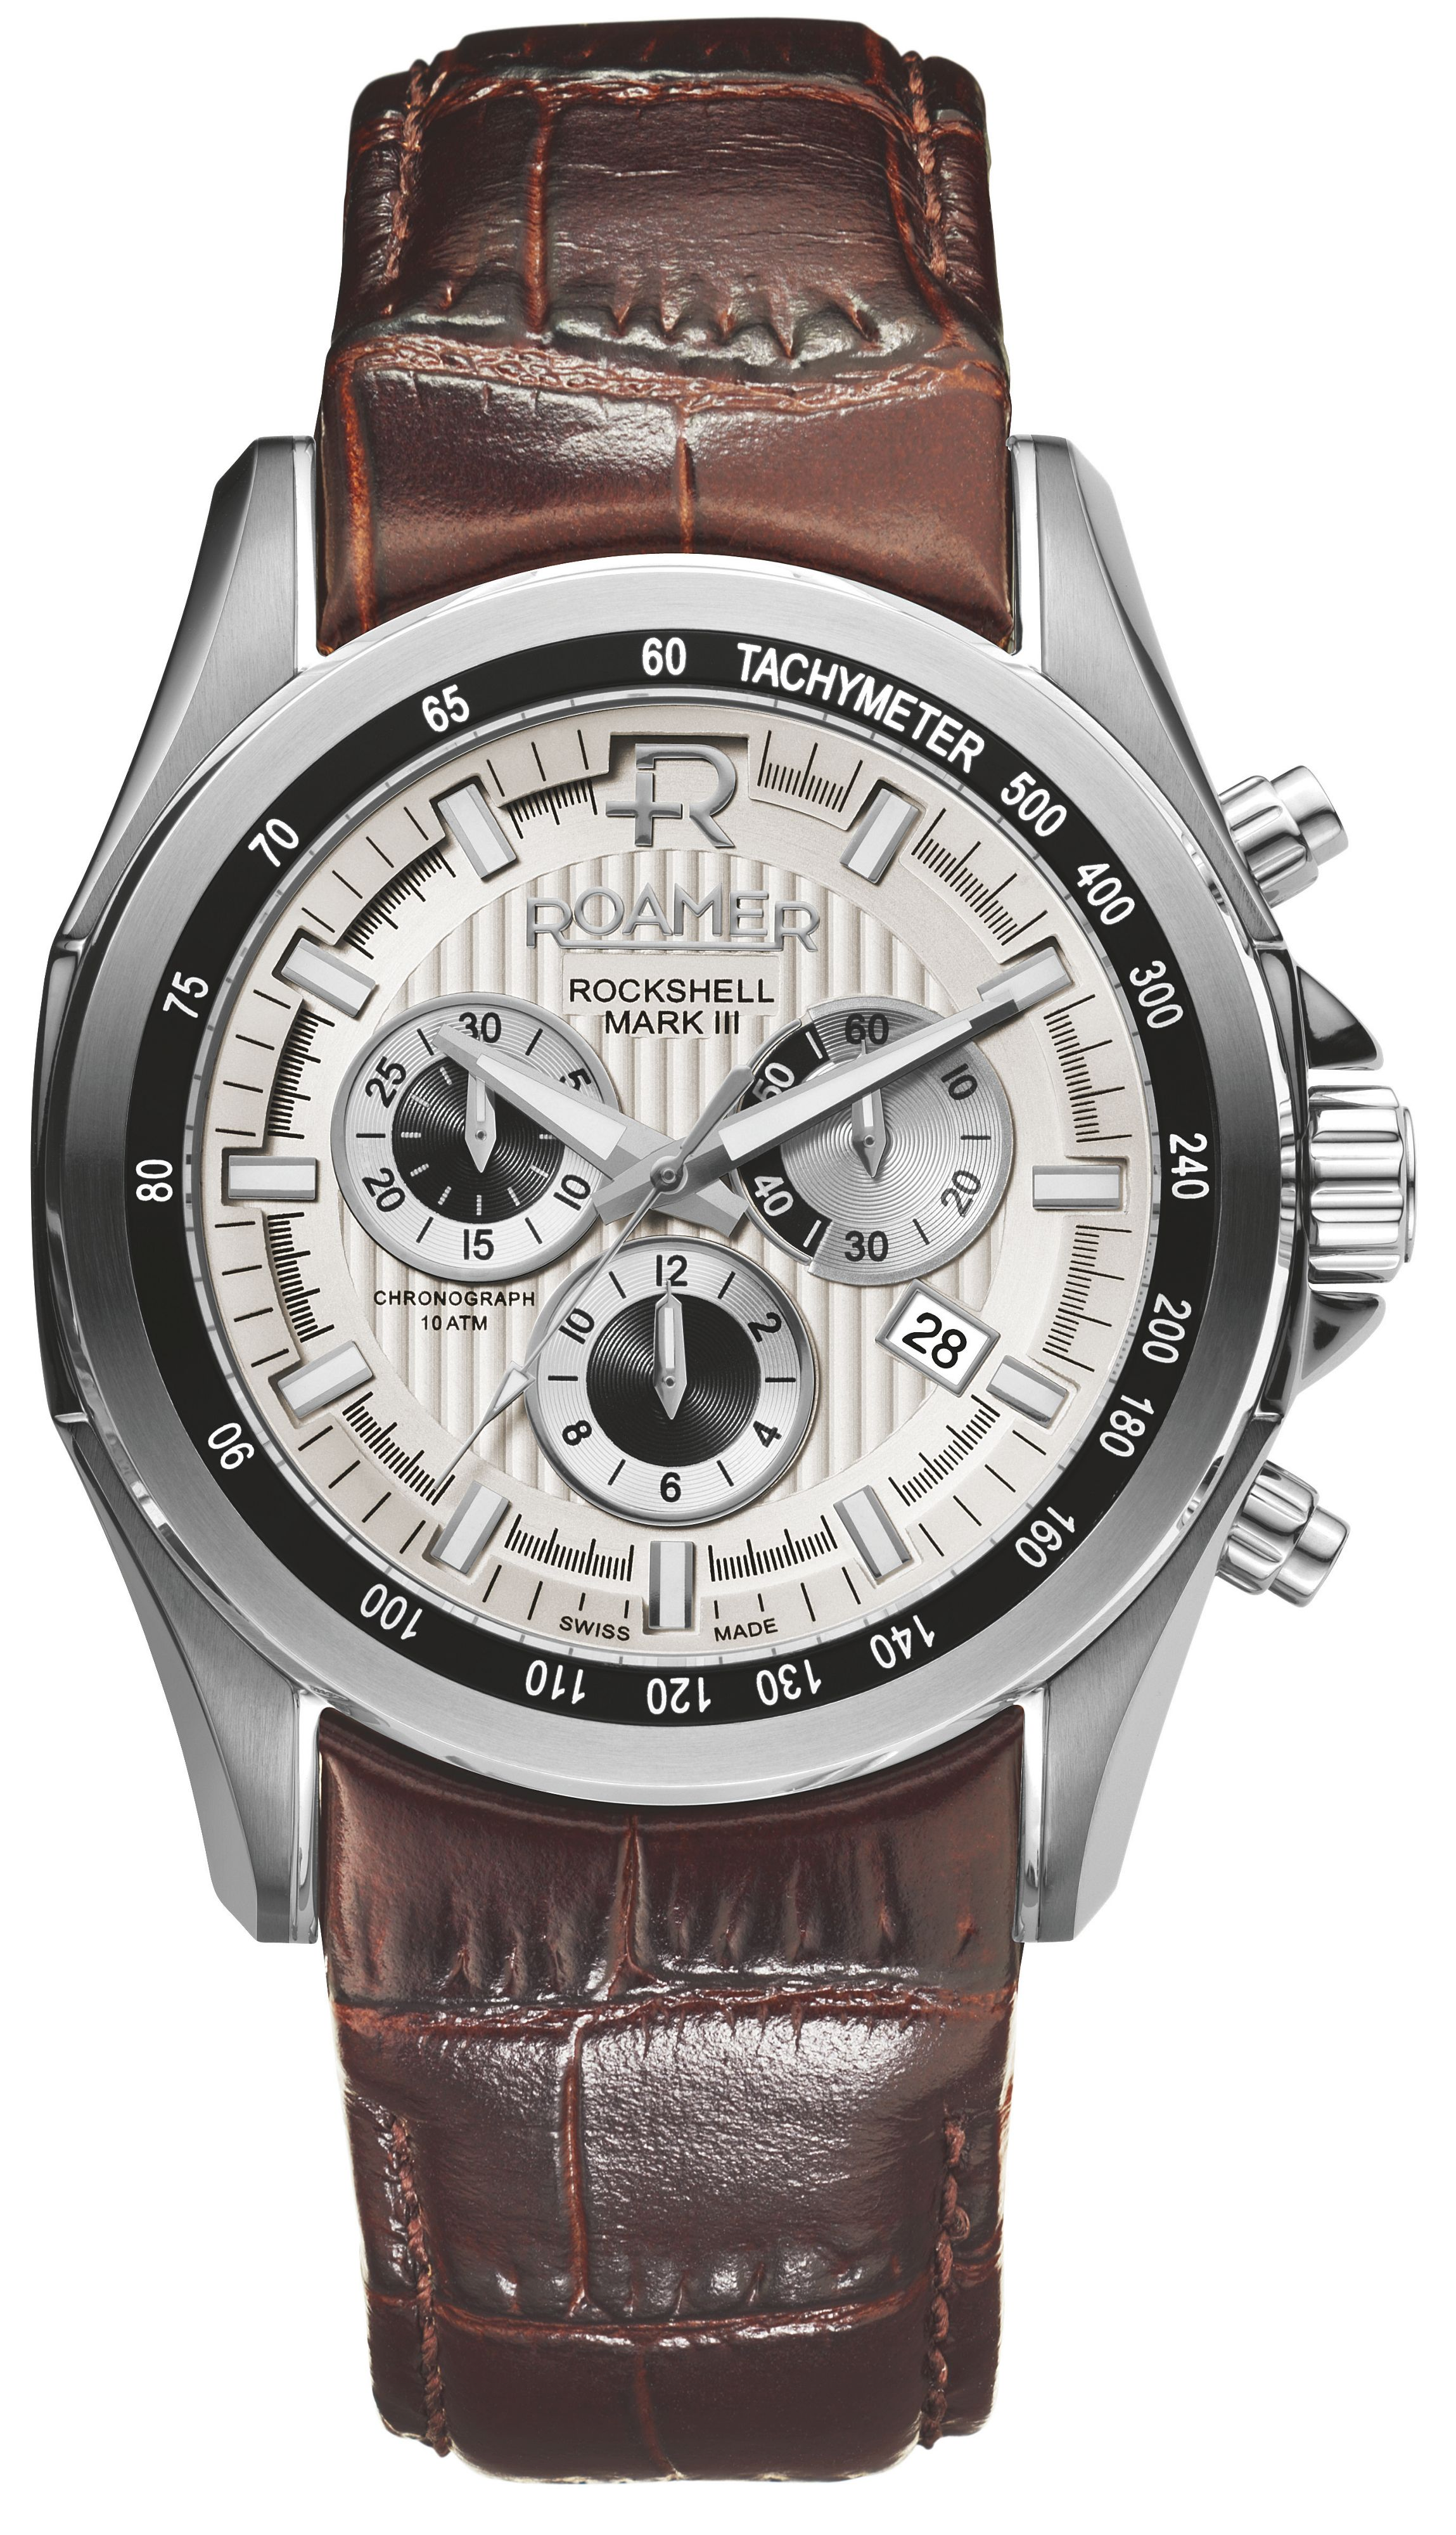 EF32.03ROX Rockshell leather chronograph watch